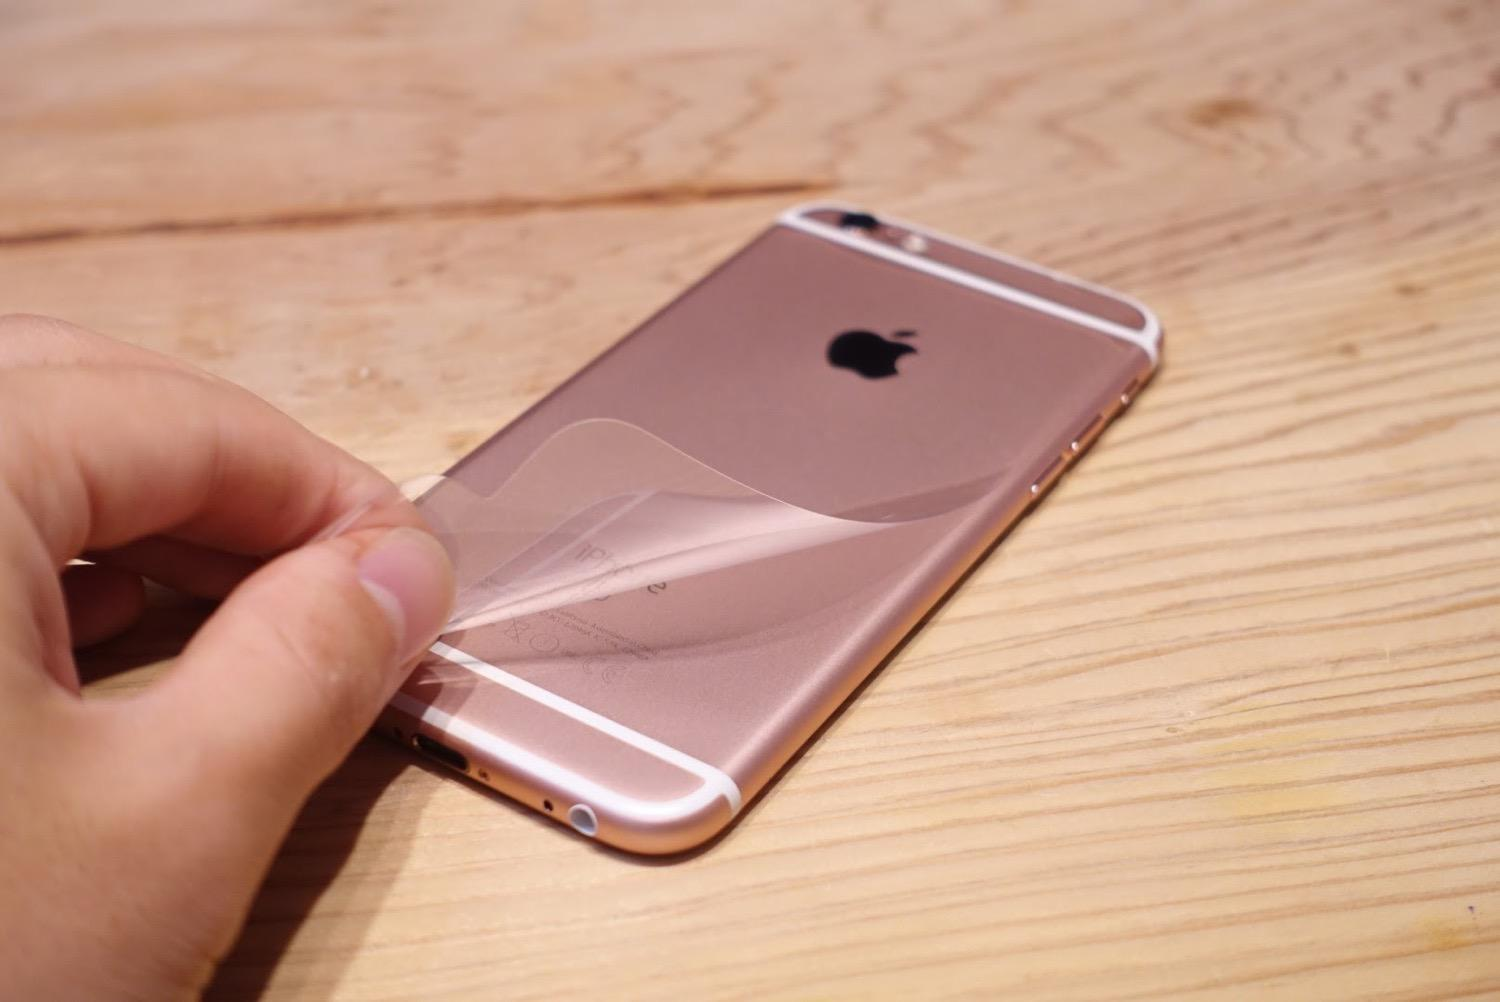 Iphone6s review8